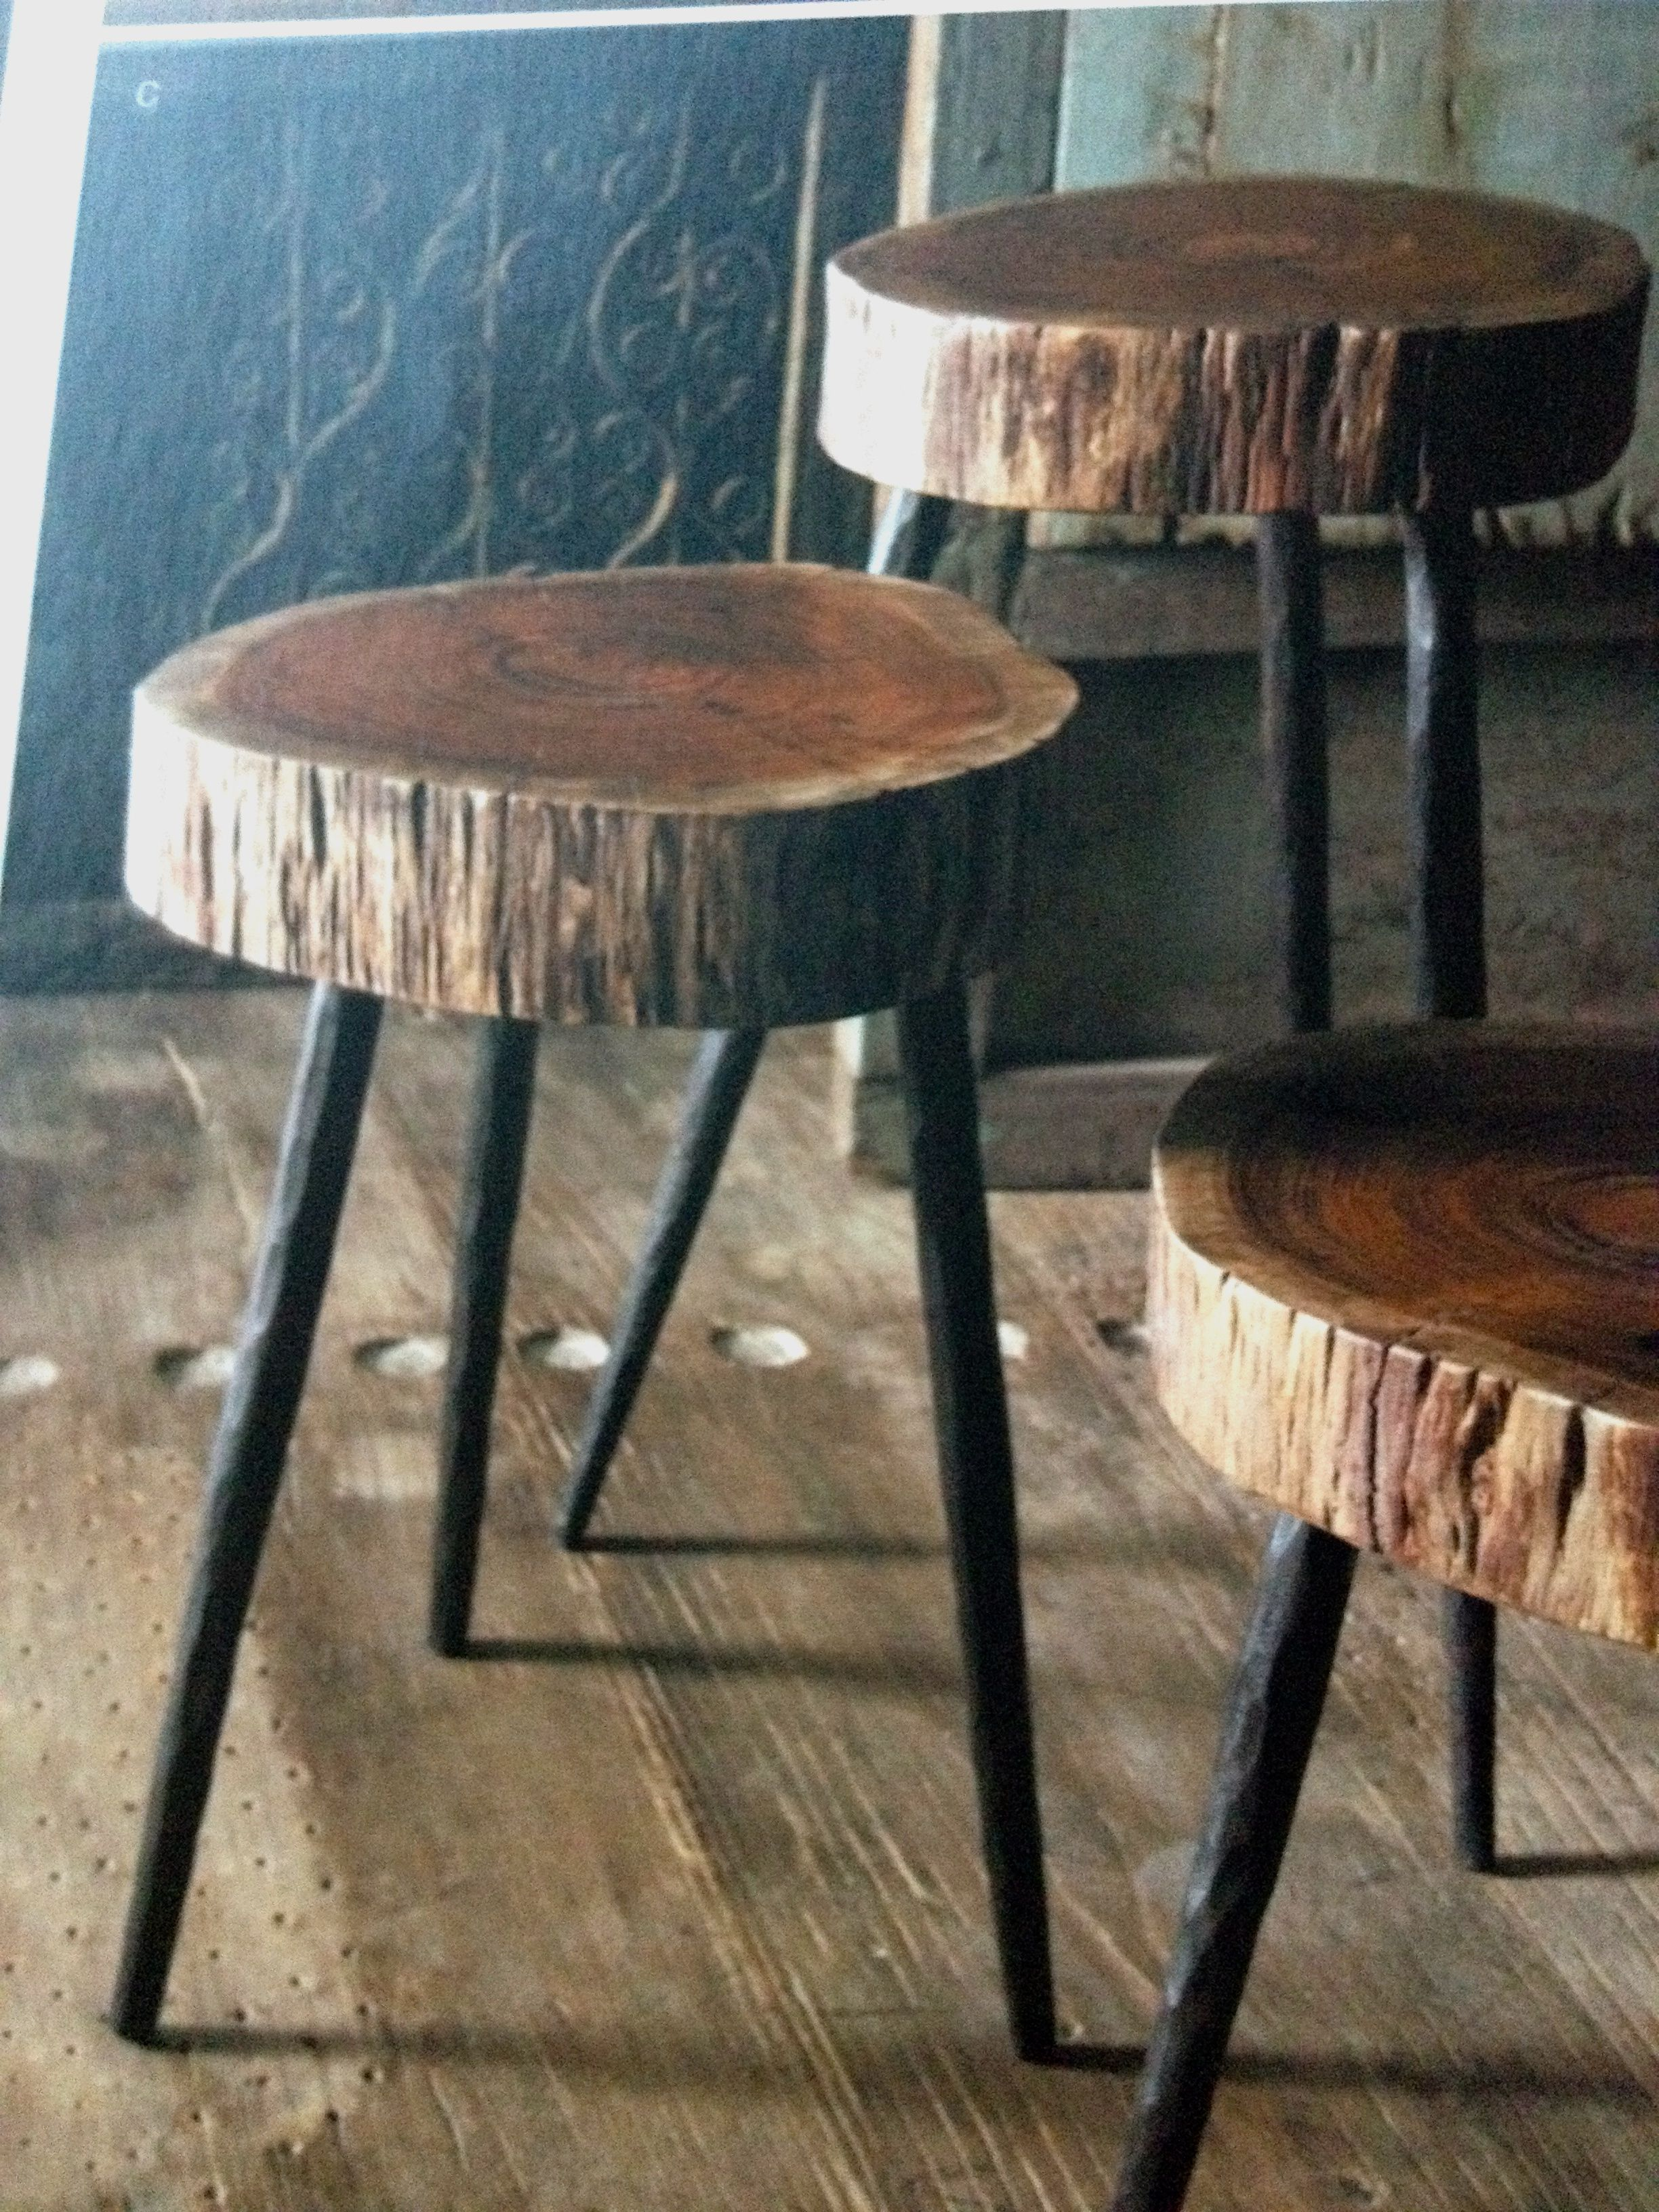 Sliced Wood Side Tables In Three Different Sizes Available To Purchase Via Eclectic Wood Slice Crafts Large Wood Slices Wood Tree Slice